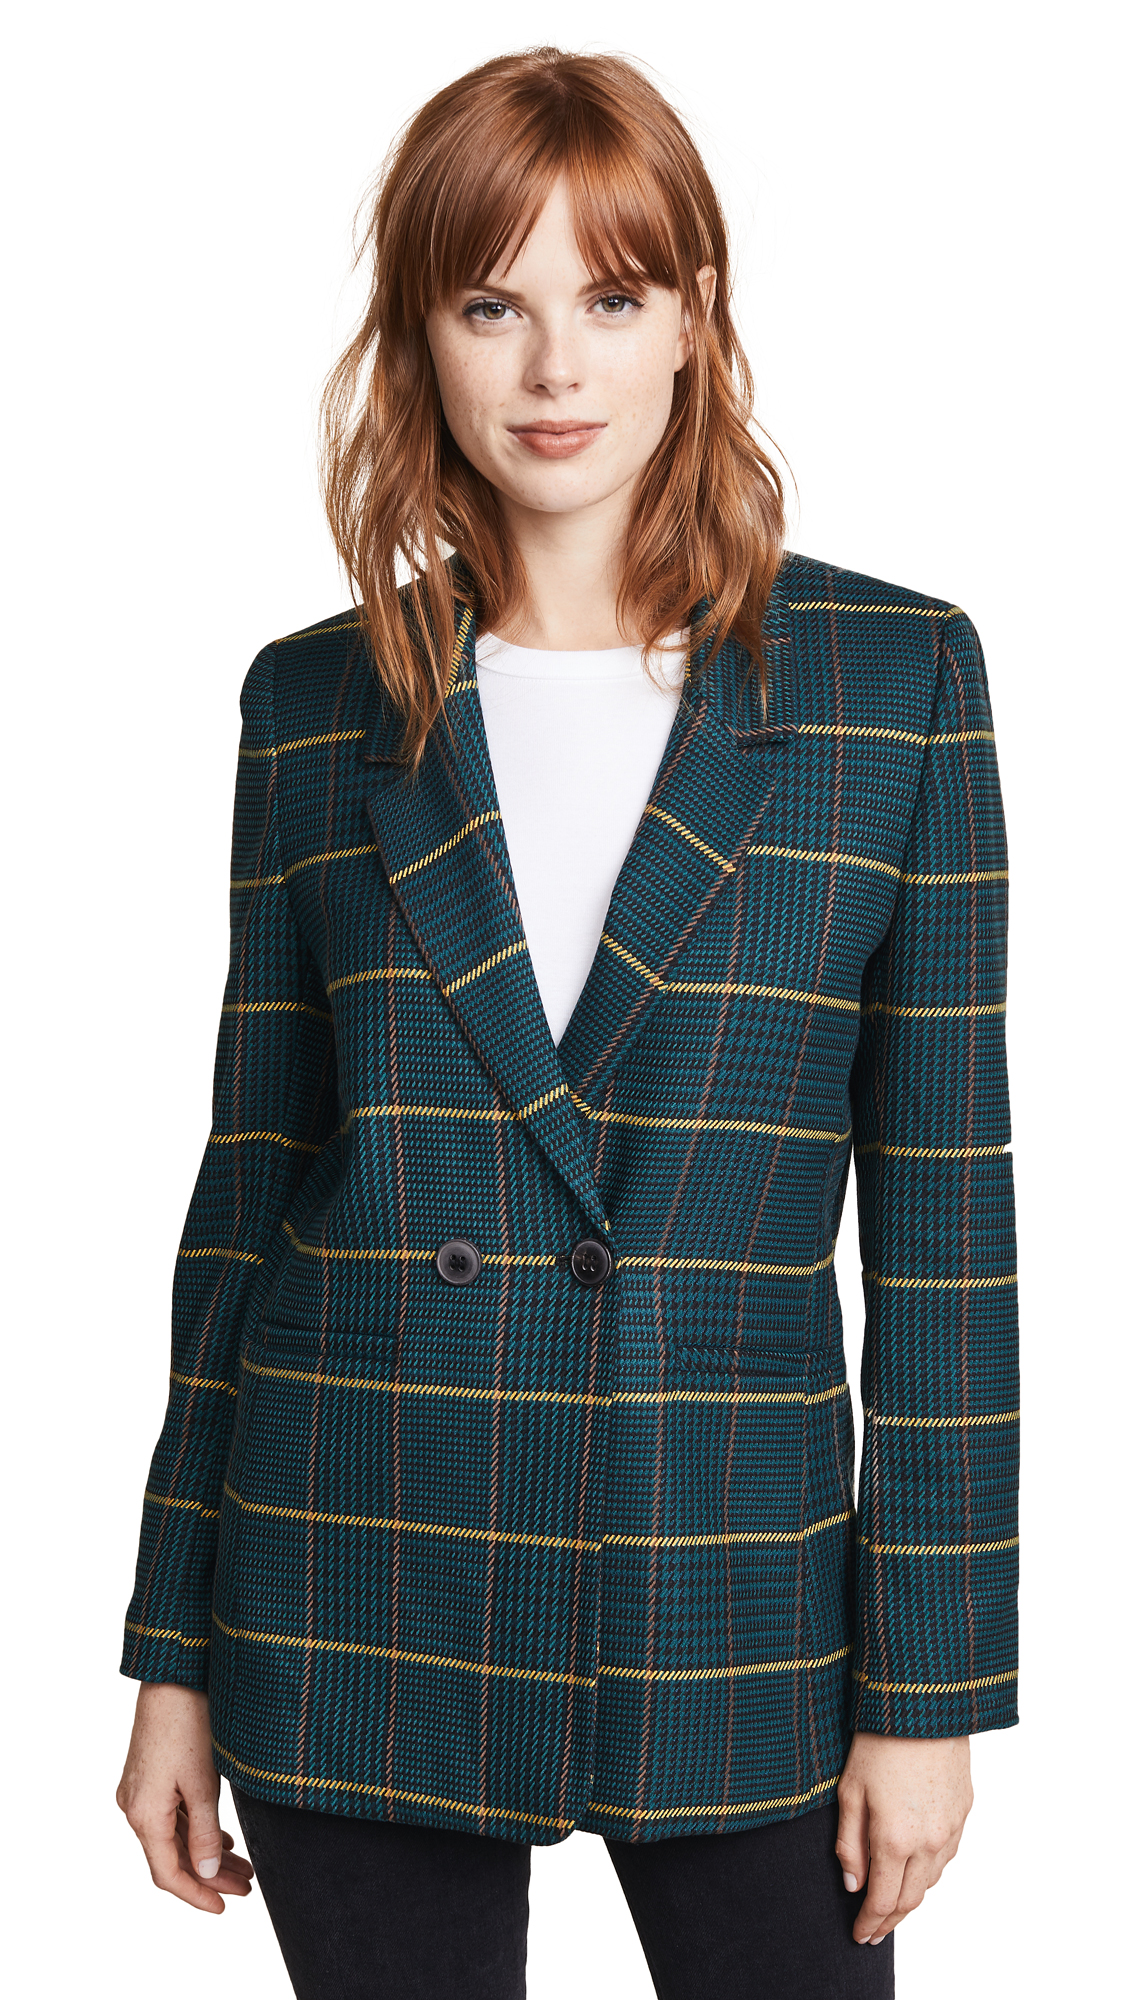 ANINE BING Madeleine Plaid Blazer in Green Plaid